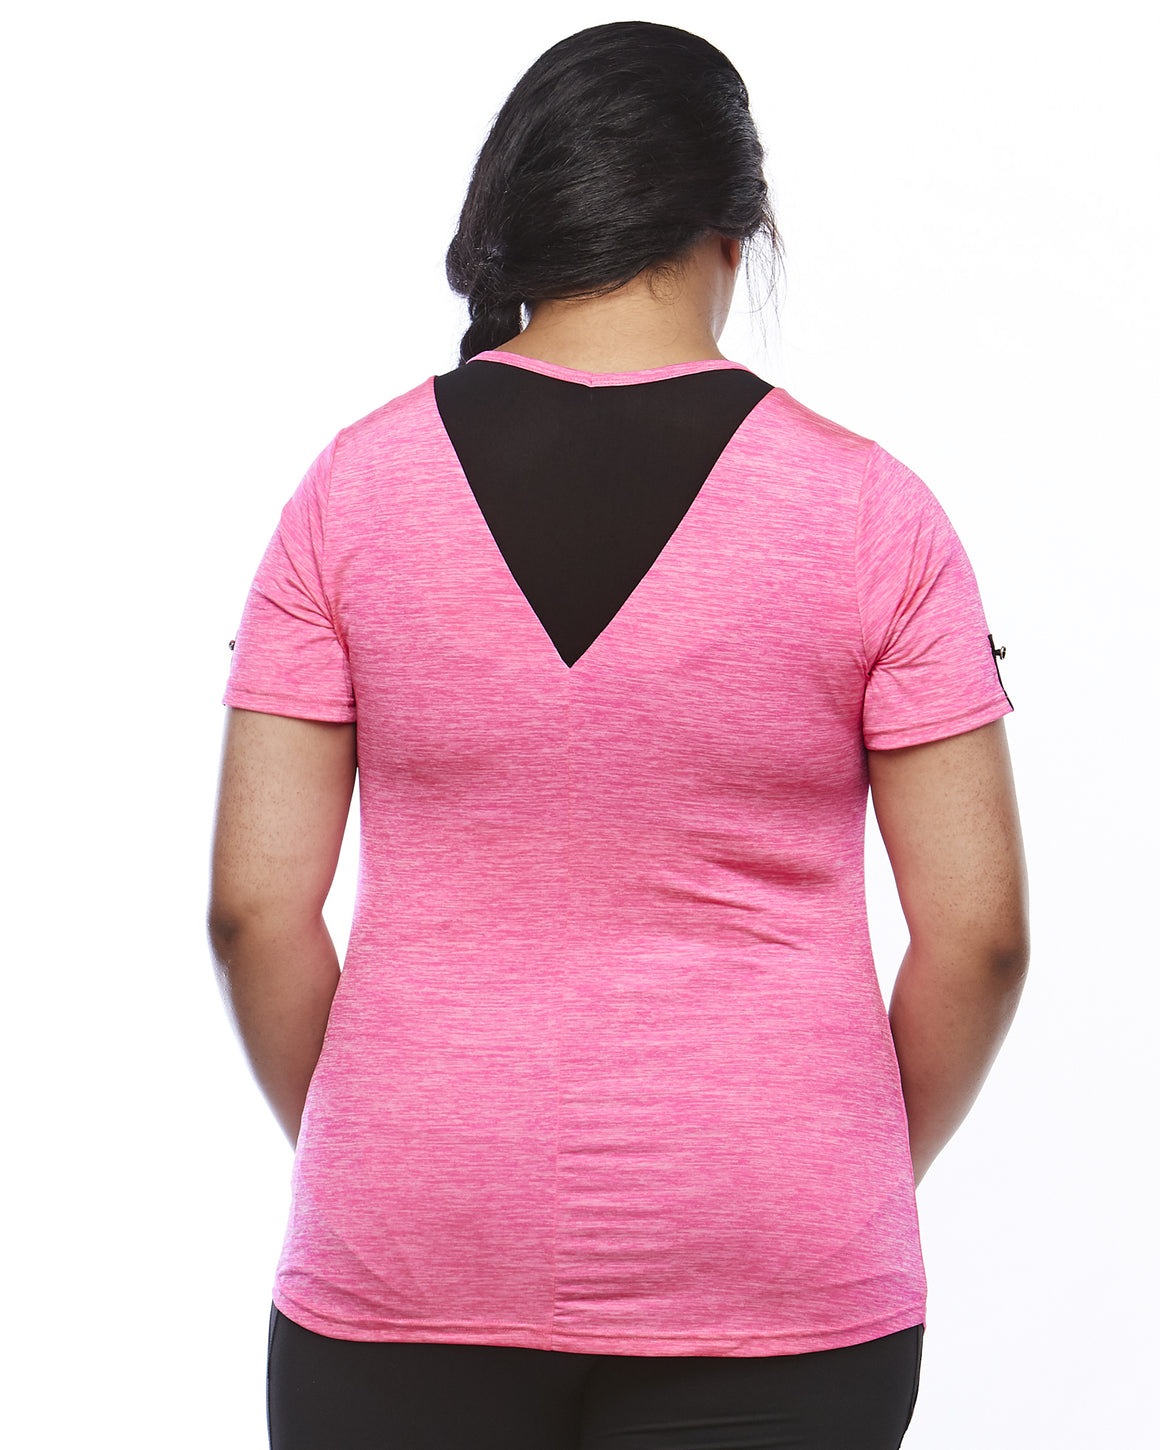 Back View Zest Short Sleeve Plus Size Sports Top from Lowanna Australia